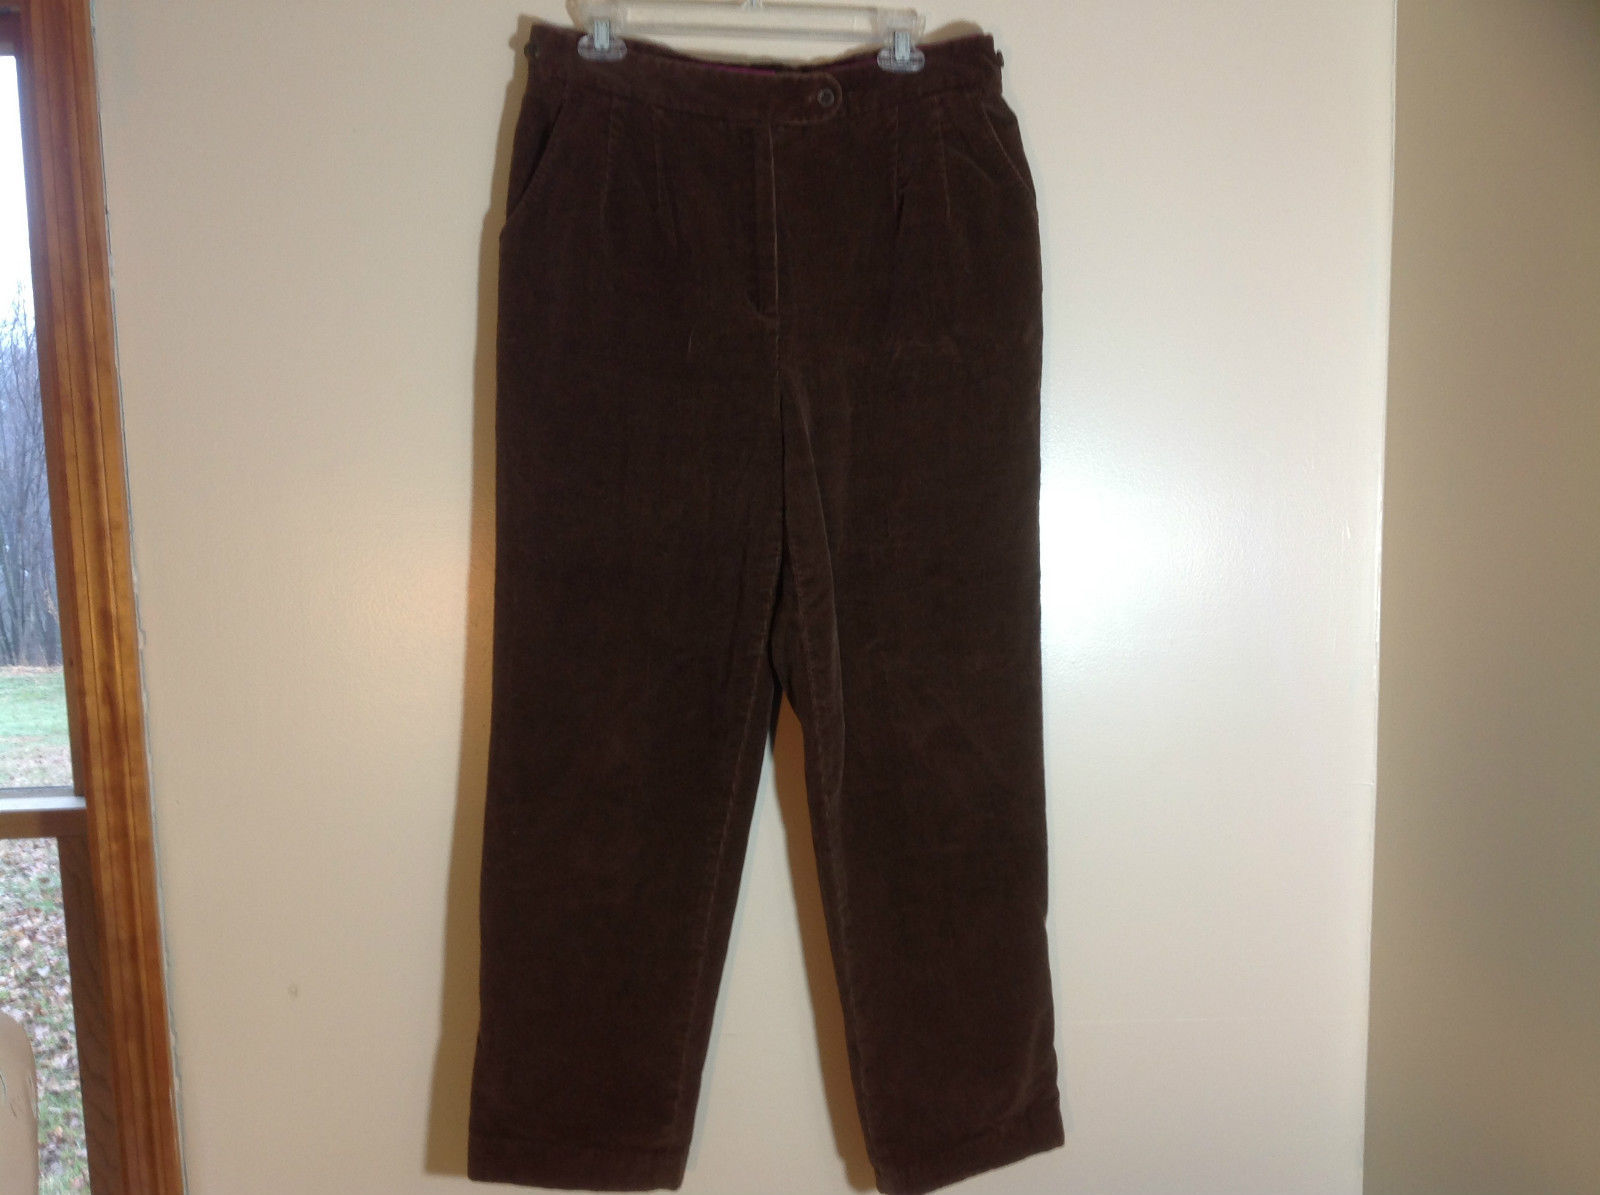 Brown Corduroy Harve Benard Pants Size 16